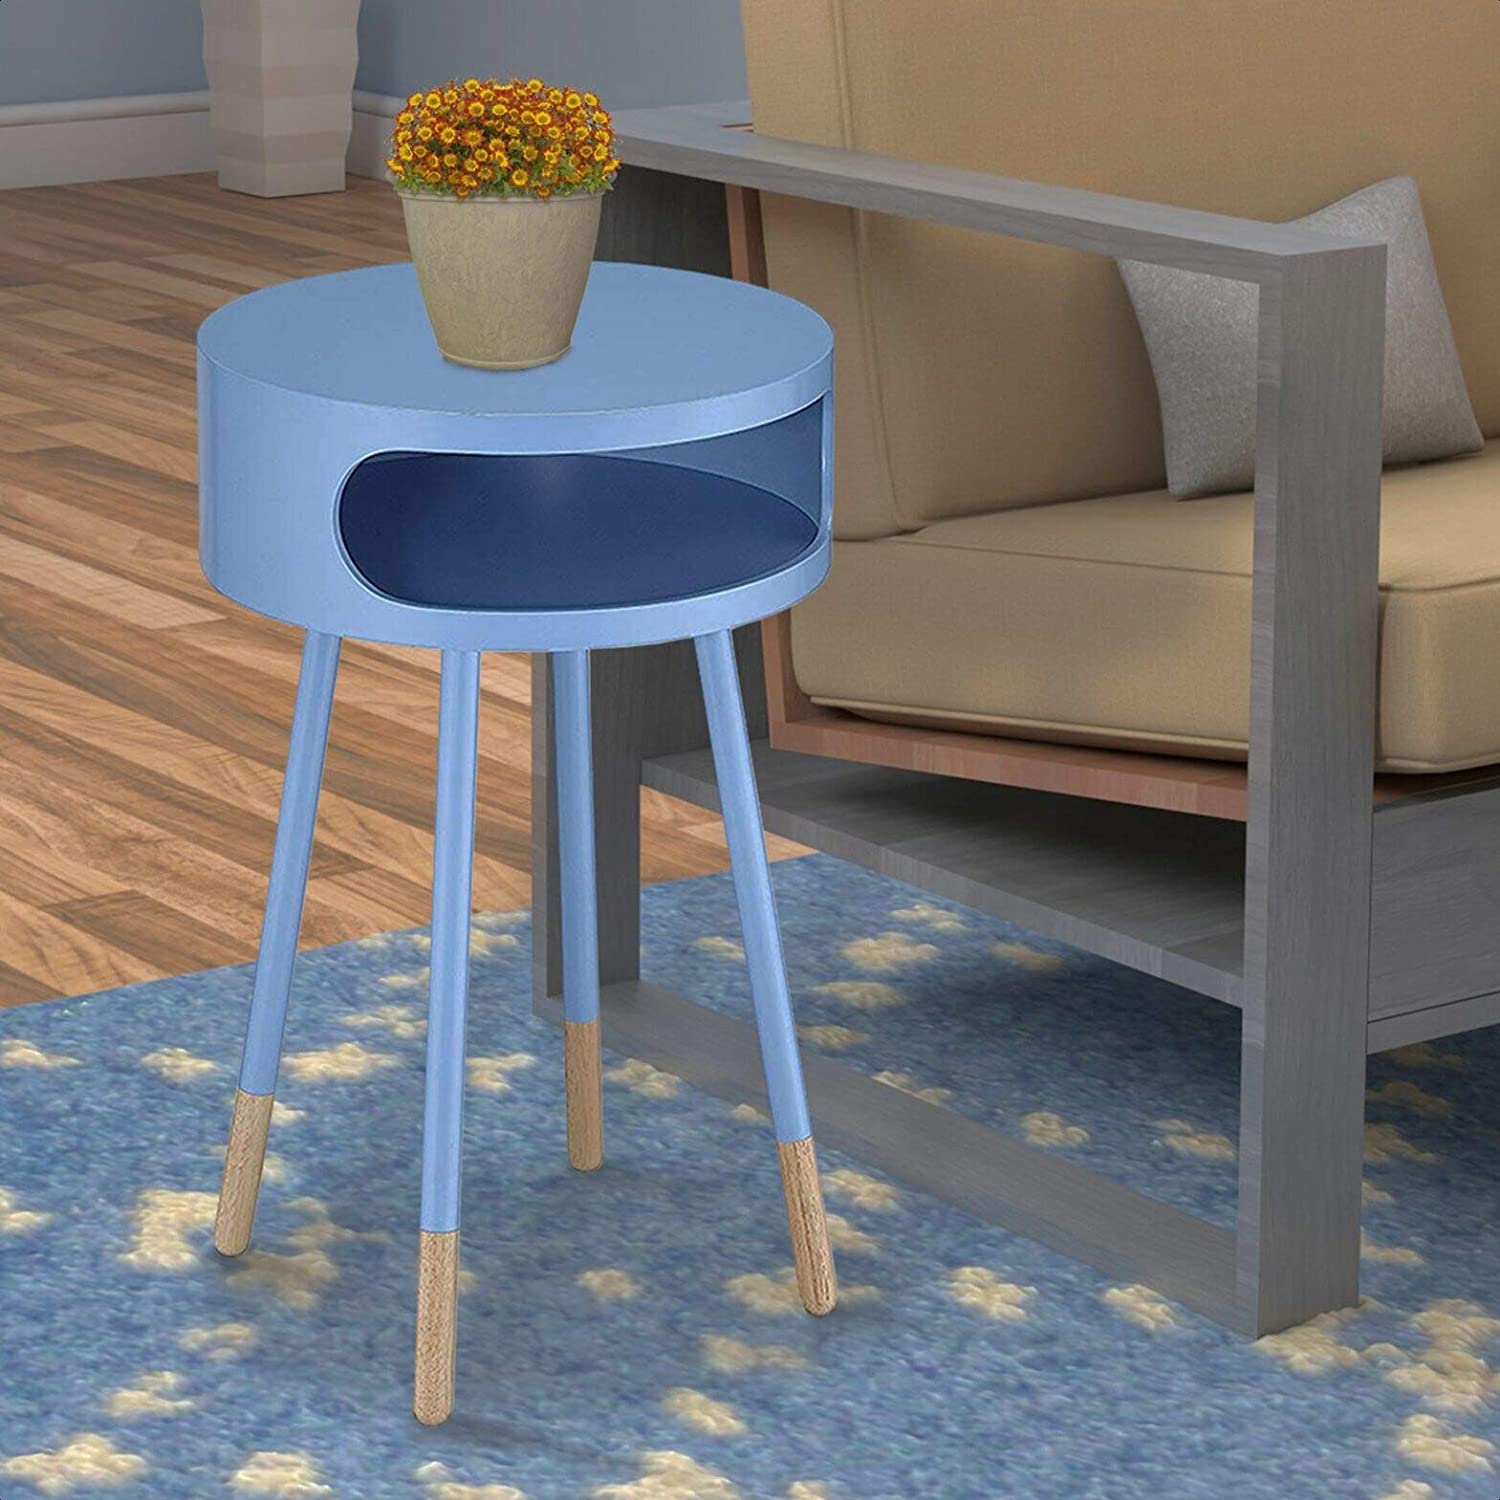 Ferrin 4 Long Beach Mall Leg End Table with Storage Animer and price revision x W 26'' 16'' H Overall: